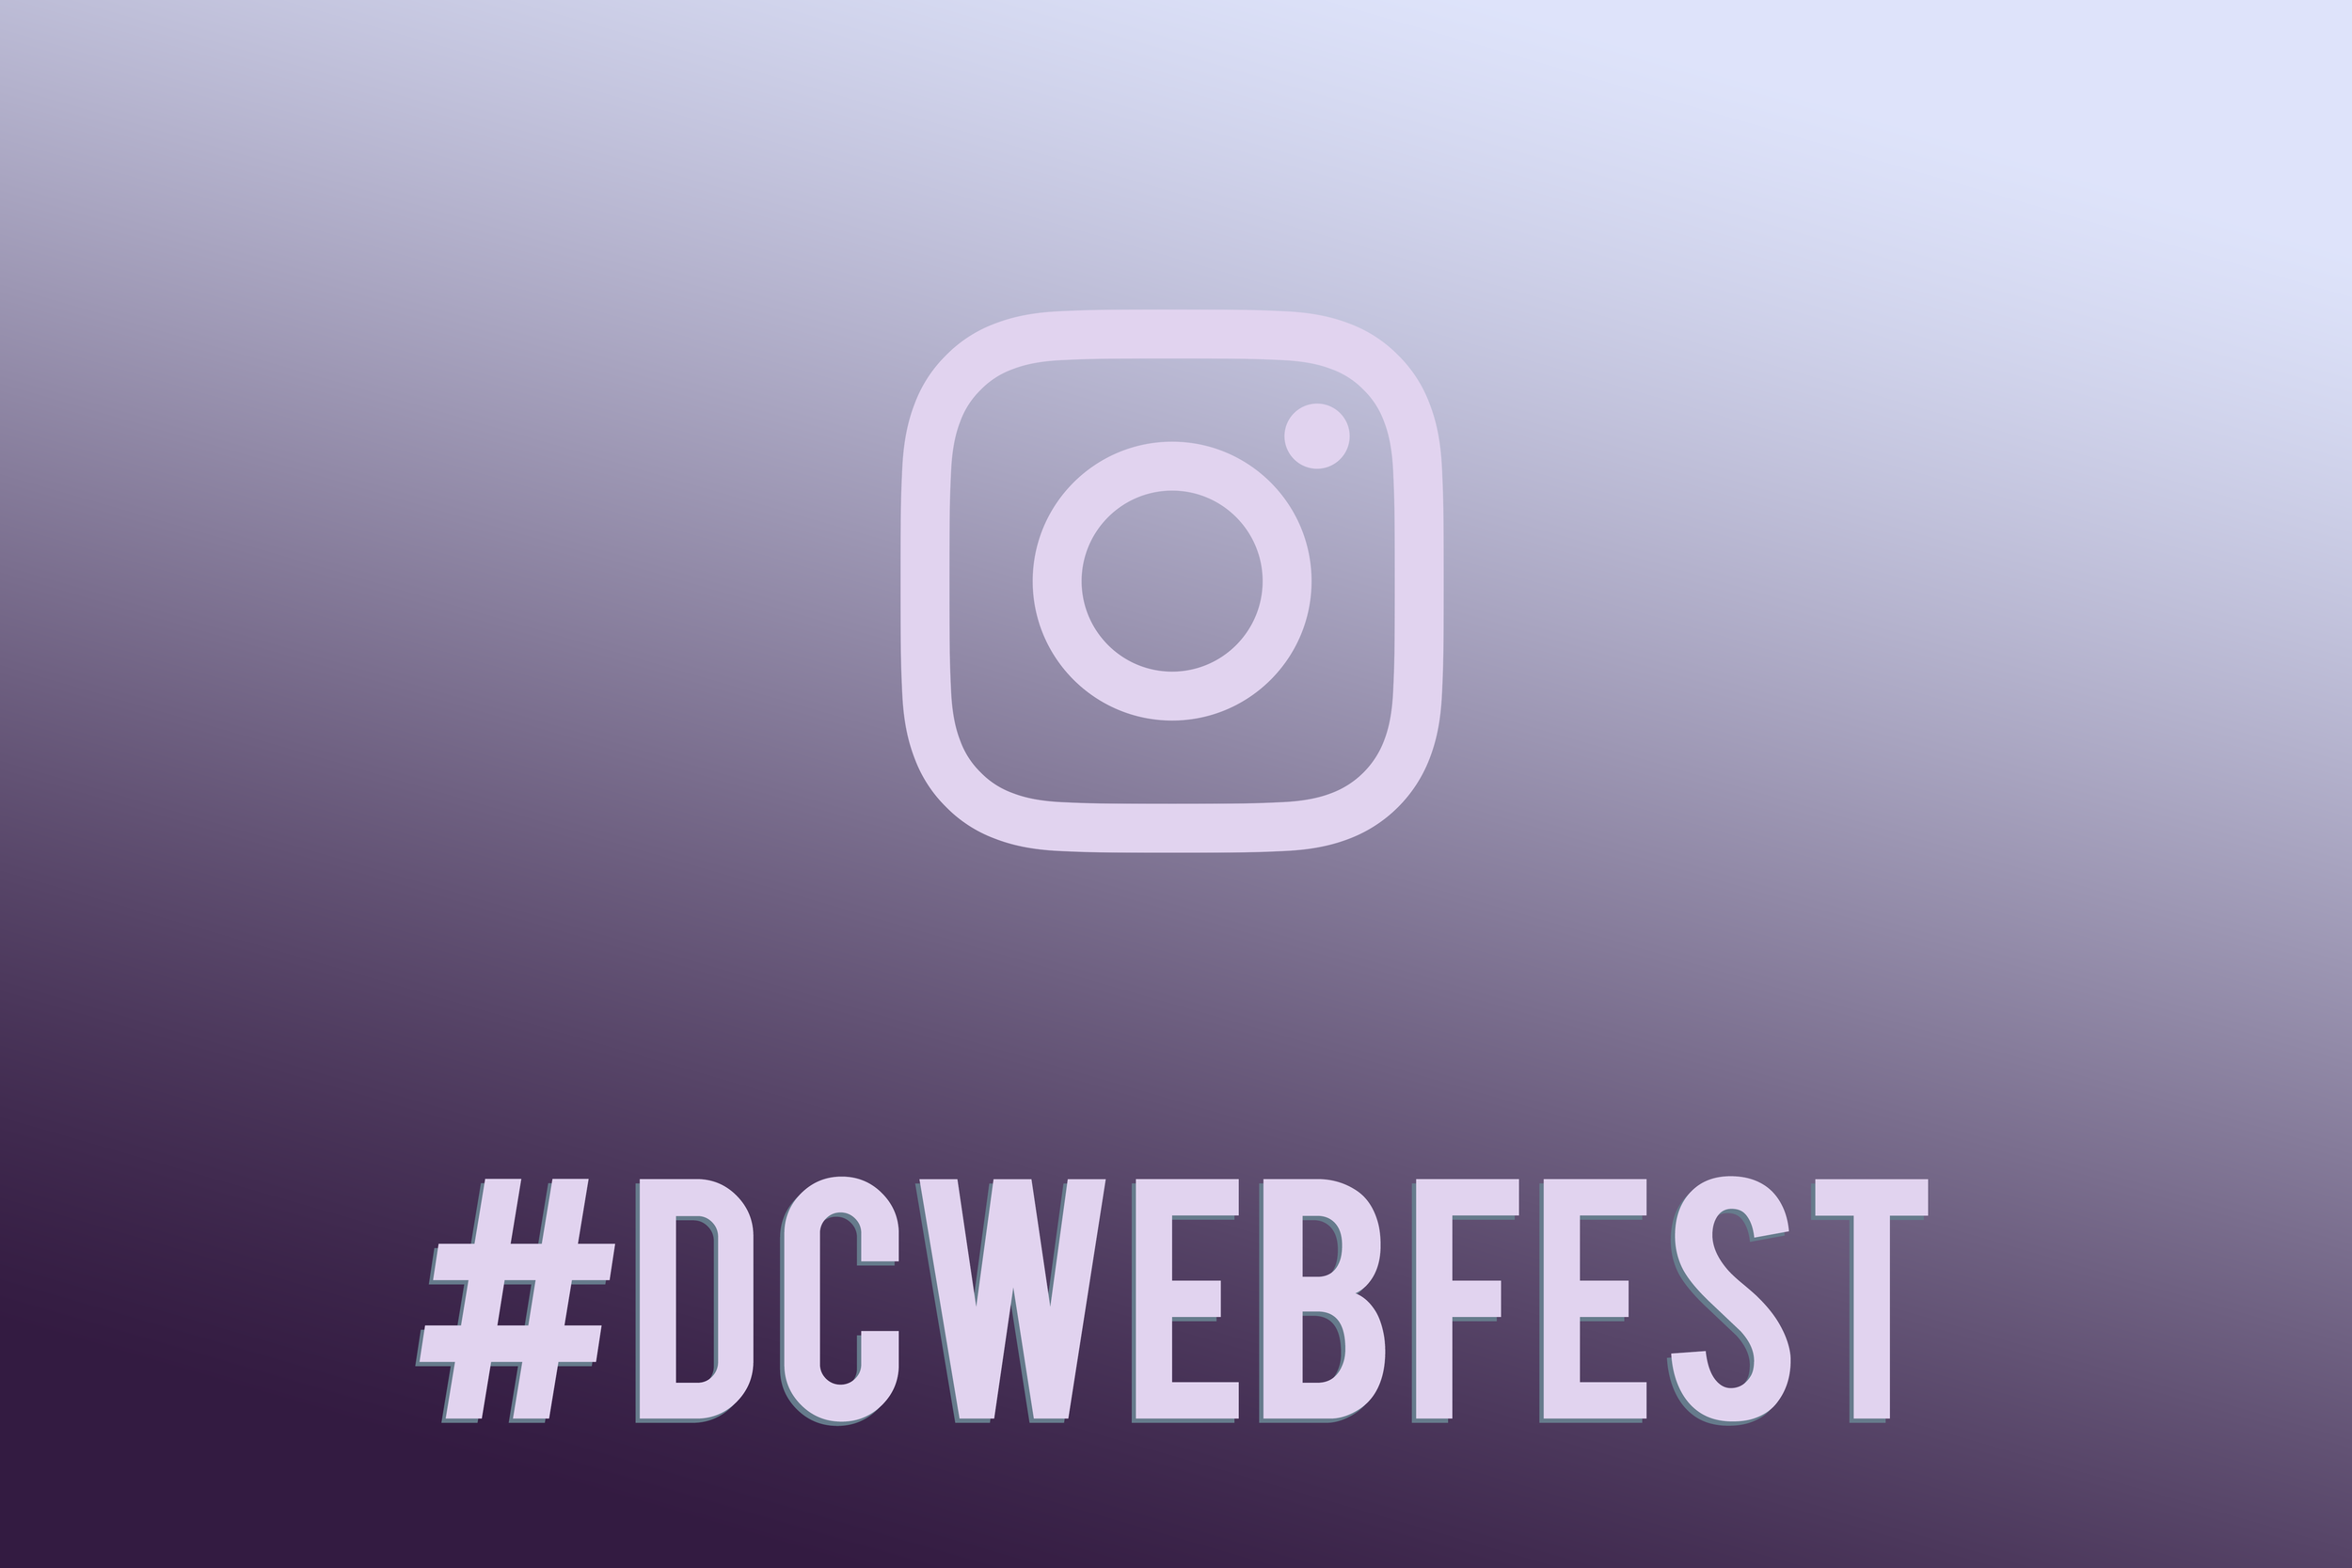 Thank you for sharing your pics to #dcwebfest!